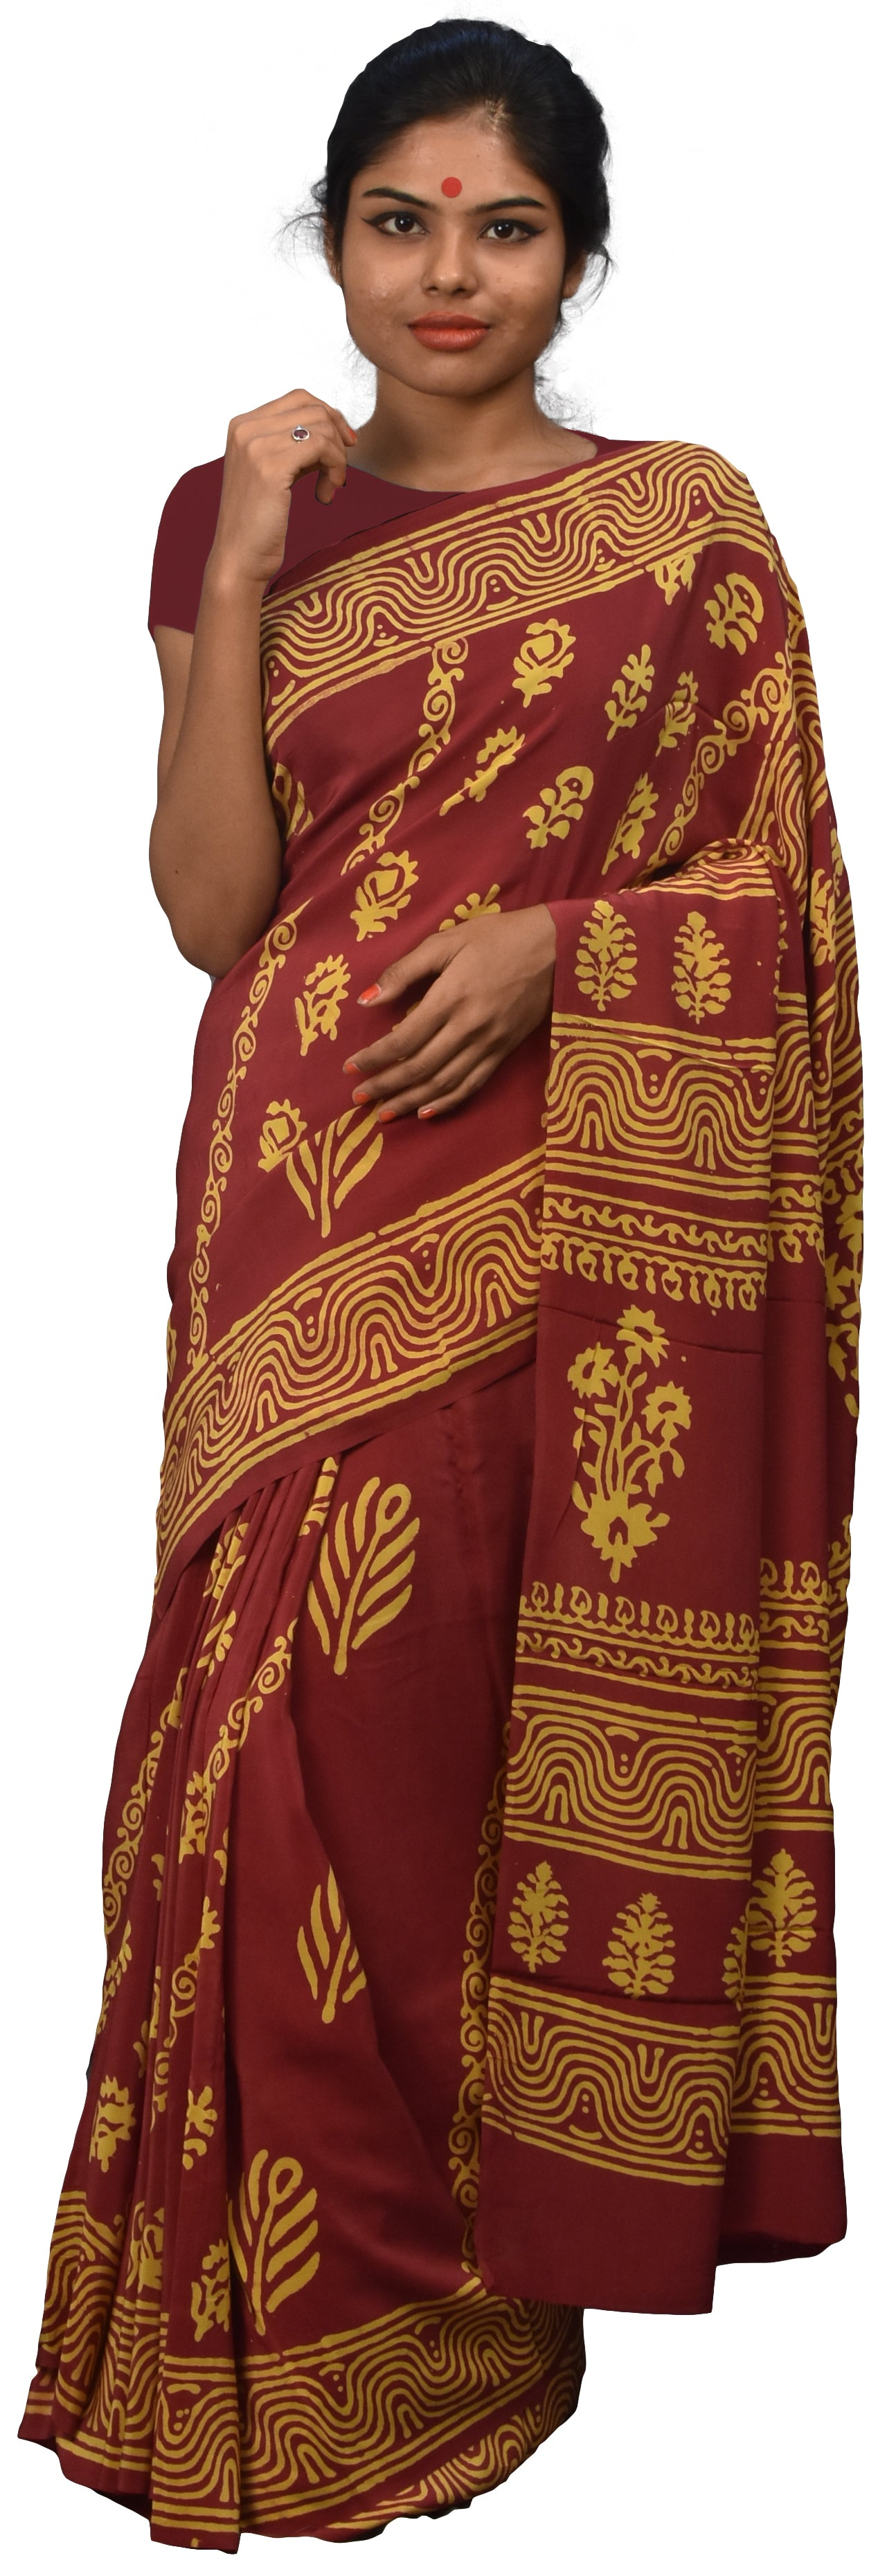 Multicolor Designer Wedding Partywear Pure Crepe Hand Brush Reprinted Kolkata Saree Sari RP136